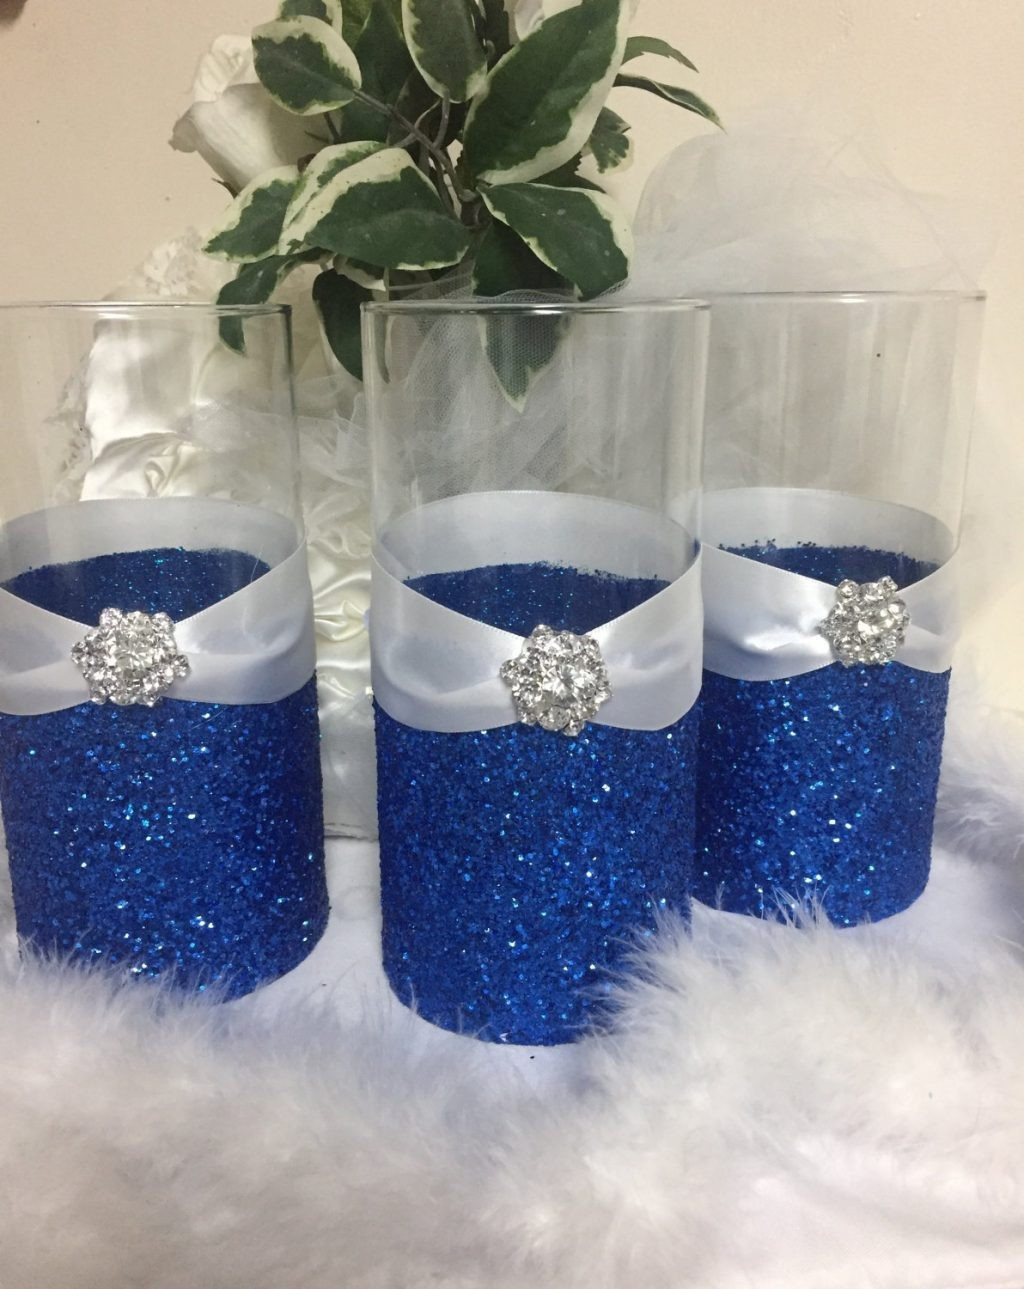 plastic square vases wholesale of wedding decorations centerpieces beautiful tallh vases glitter vase with regard to wedding decorations centerpieces beautiful tallh vases glitter vase centerpiece diy vasei 0d ball for design